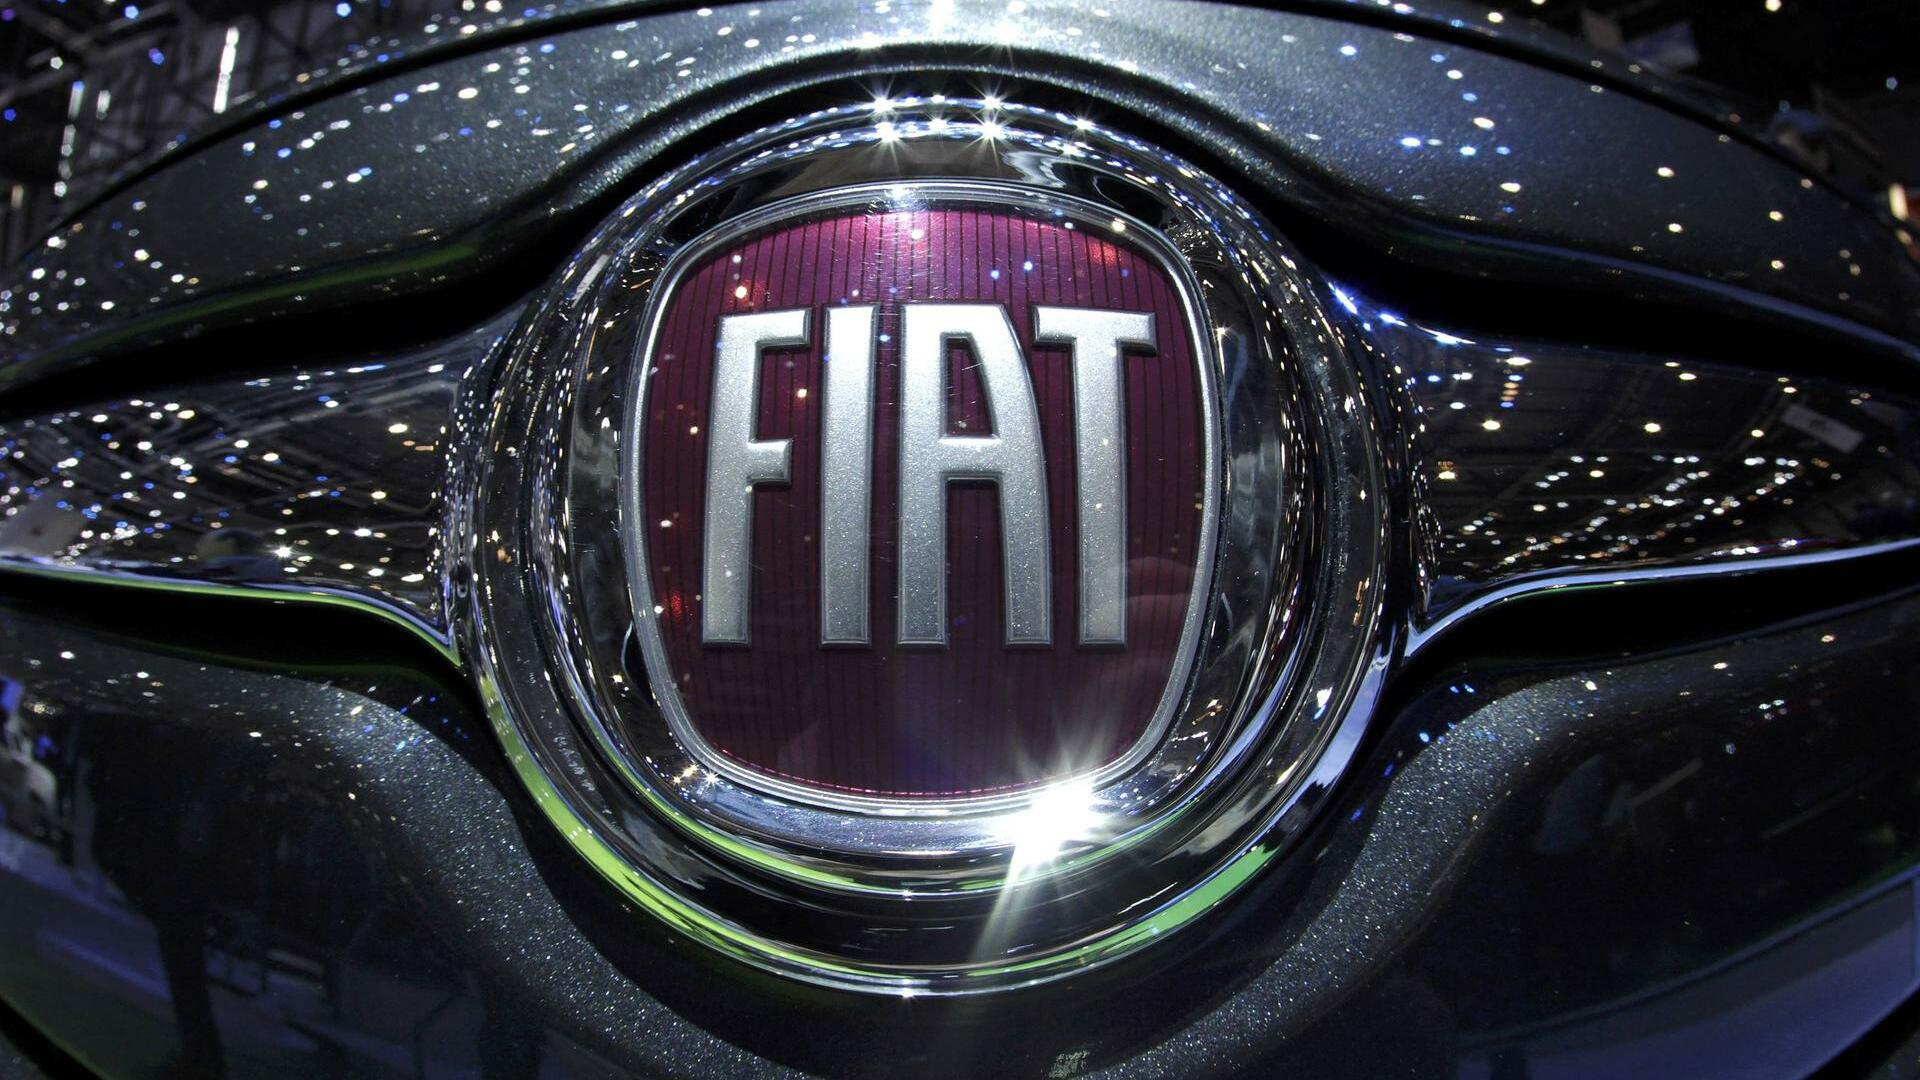 A logo is seen on a car displayed on the Fiat booth Quelle: REUTERS